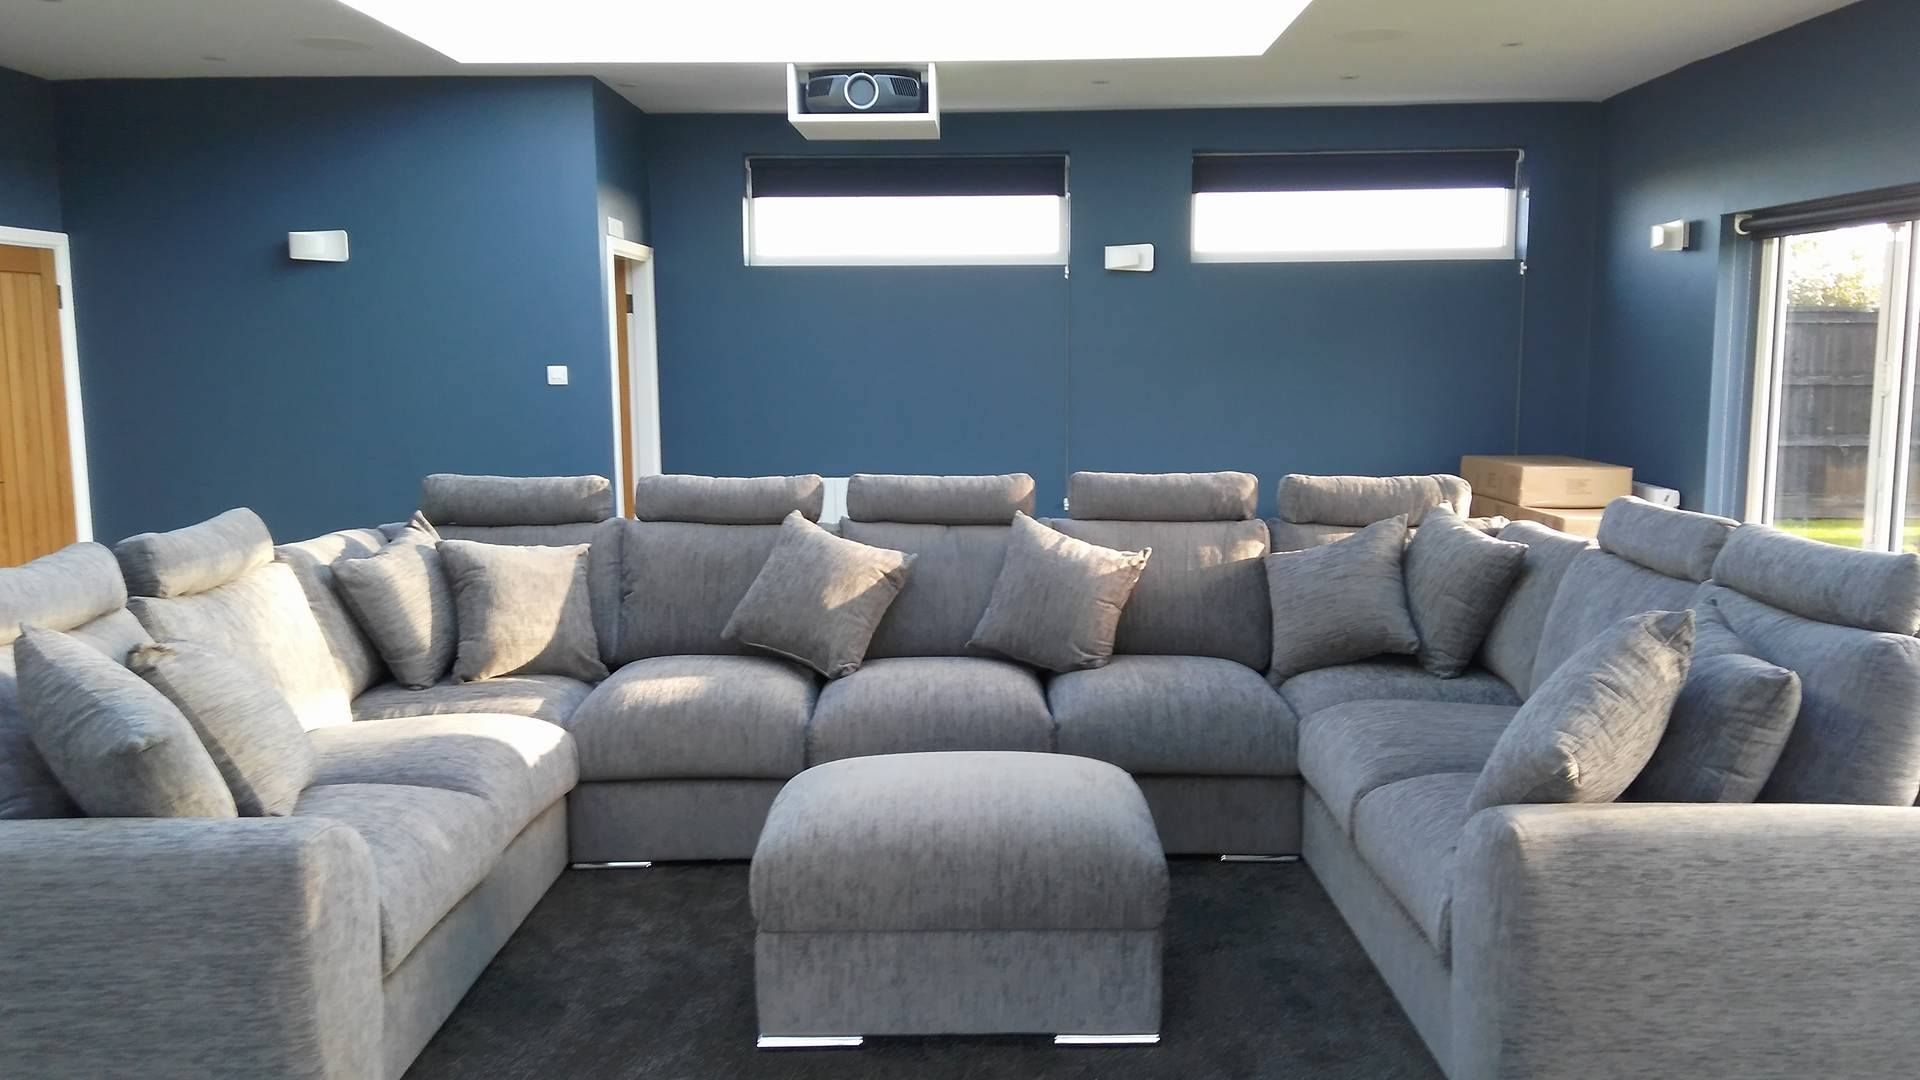 Cinema Style Sofa In Grey Fully Modular Any Shape Any Size Choose Over 200 Different Fabrics Quatropi Lar Corner Sofa Design Long Living Room U Shaped Sofa